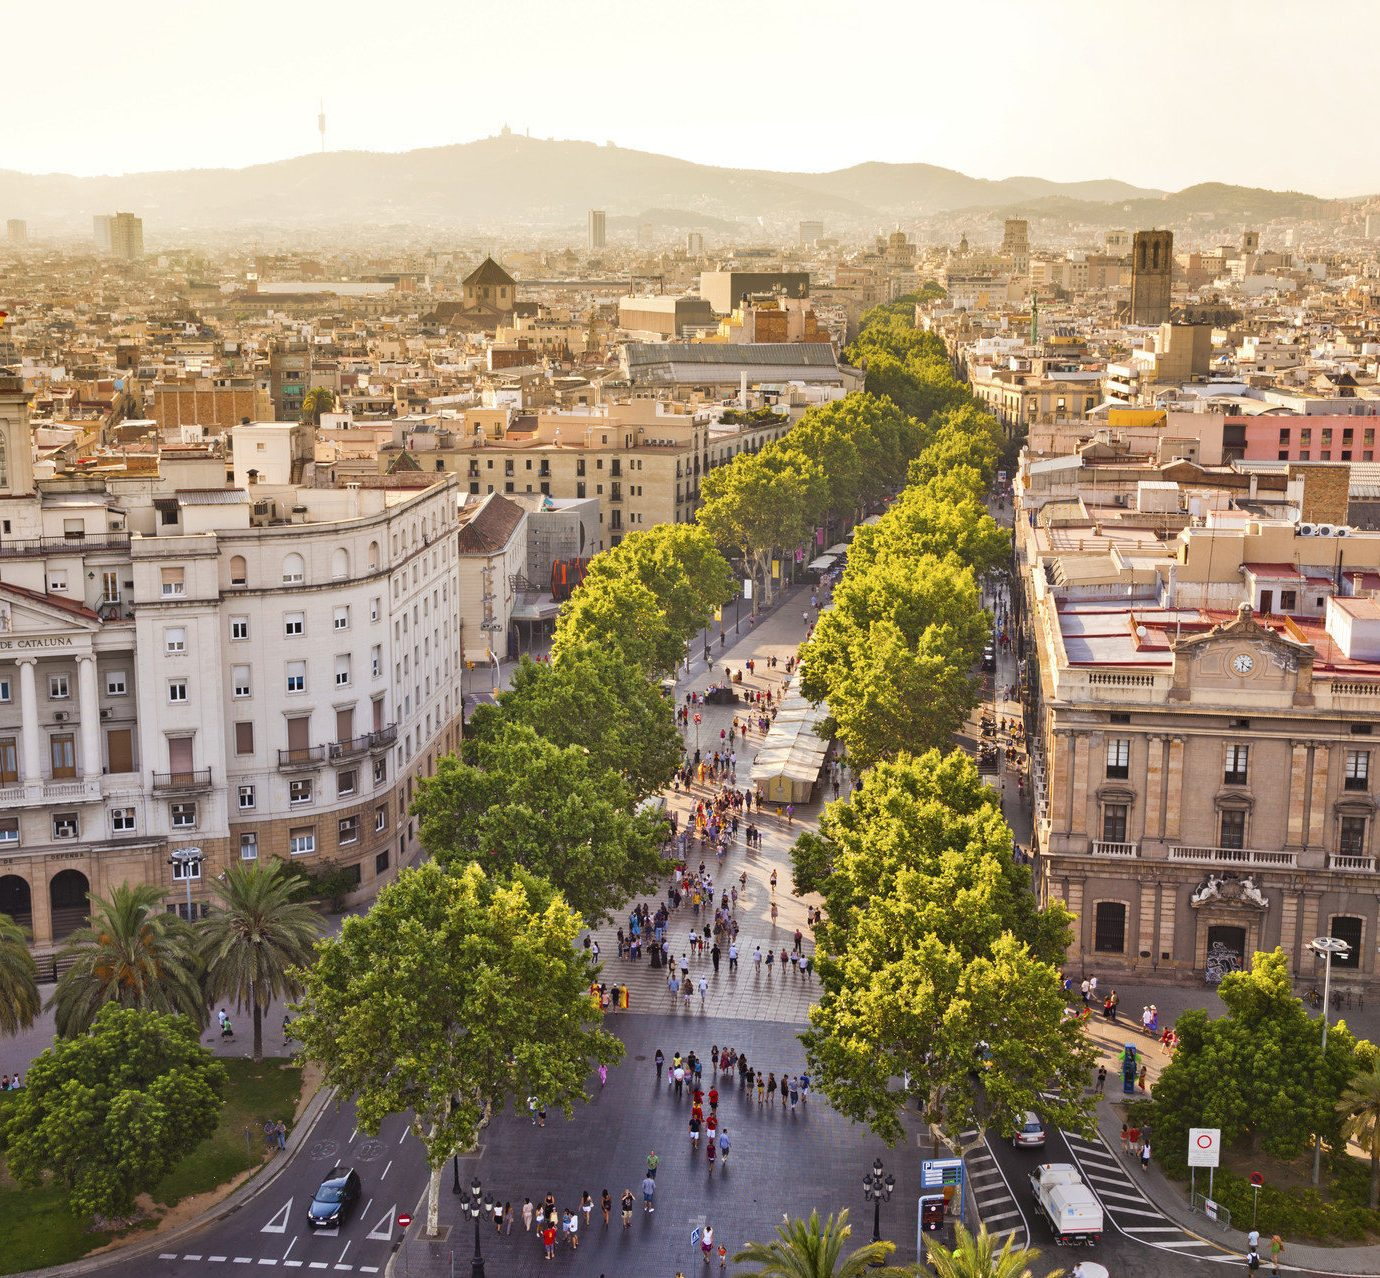 Barcelona Hotels News Spain Trip Ideas sky Town landmark cityscape City neighbourhood plaza town square aerial photography residential area metropolis Downtown ancient rome palace ancient history panorama crowd